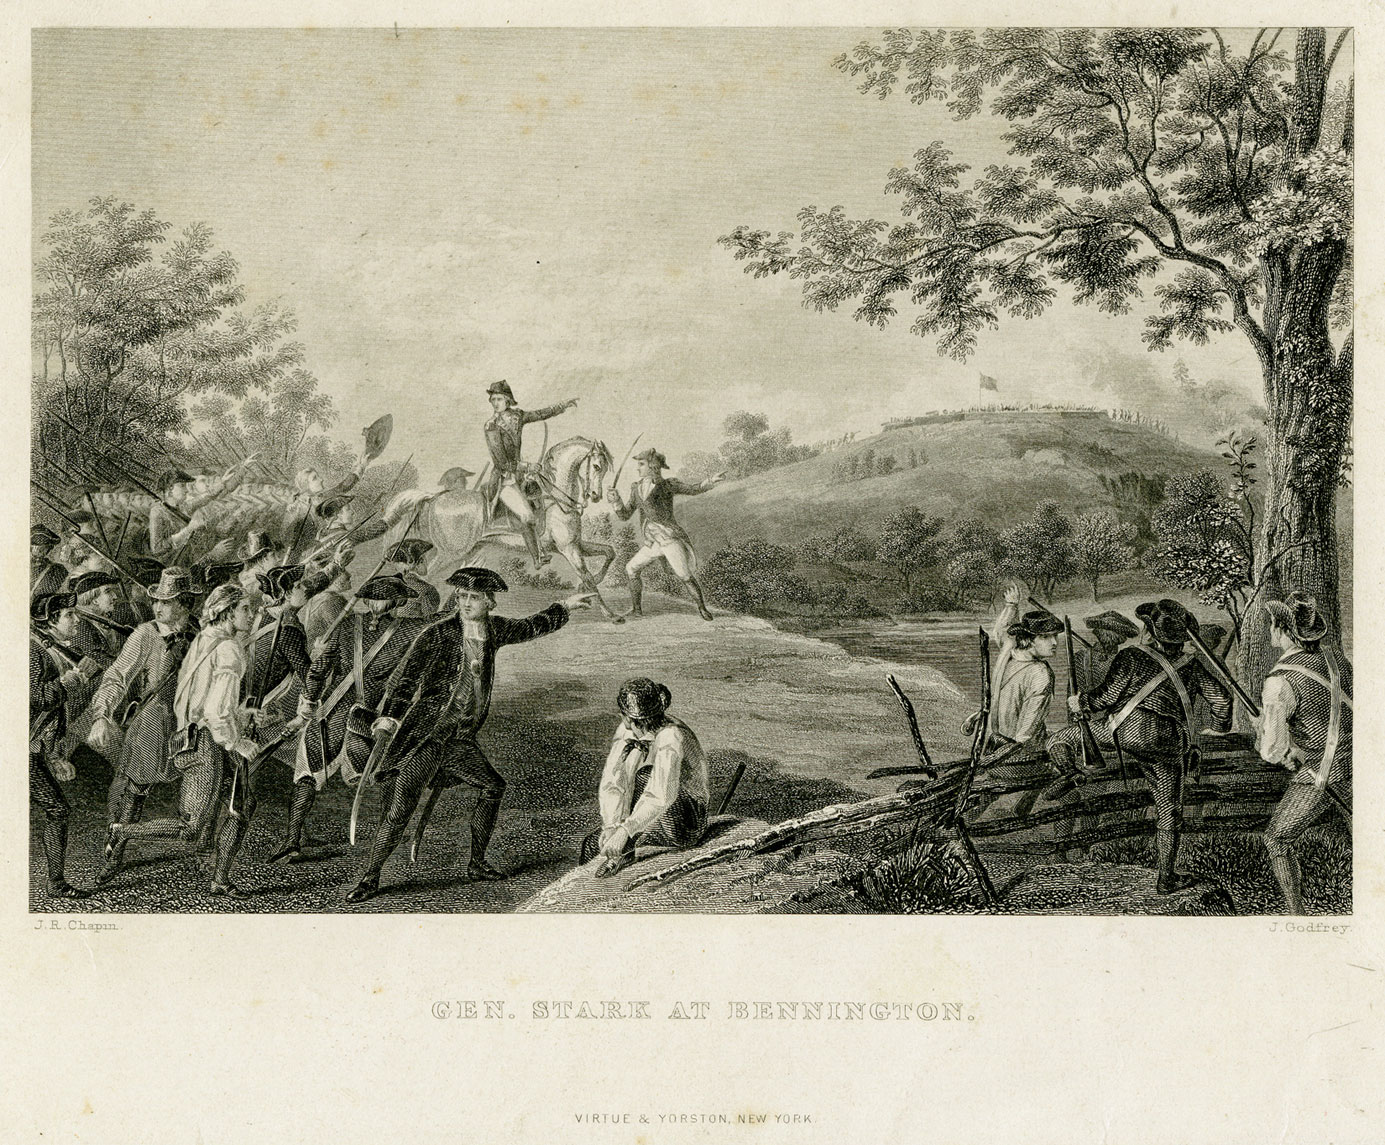 A detailed engraving shows a scene in rural country. In the center are two men with swords, one riding a horse and one holding it. Both are pointing to the right and looking to the left. To their left are a crowd of men, some in uniforms and some in farmer-like clothing, but all with weapons. They look towards the men in the middle and raise their swords. On the right of the men in the middle are trees and a hill far away. On top of the hill is a flat building with a flag on it and some small figures. In the foreground are several men climbing over a fence pointing to the hill. They are also armed, and seem to be joining the crowd of men on the left.